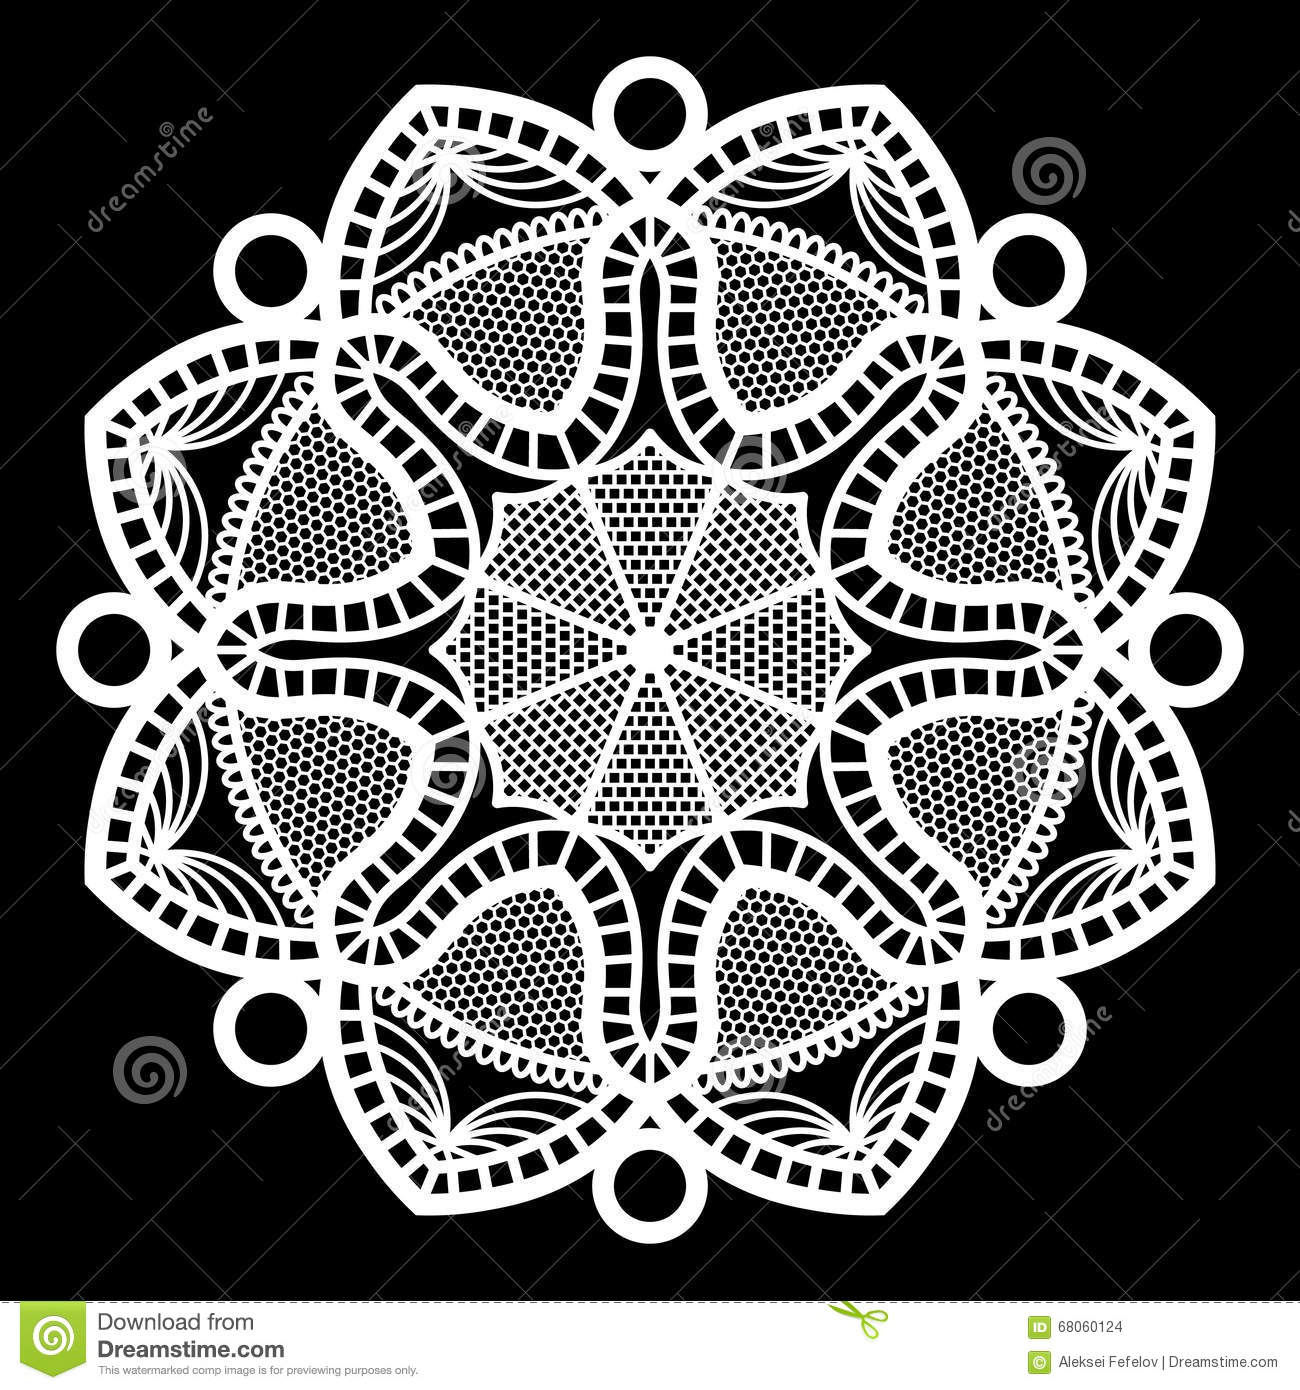 Lace Round Paper Doily, Doily To Decorate The Cake, Doily Under The ...